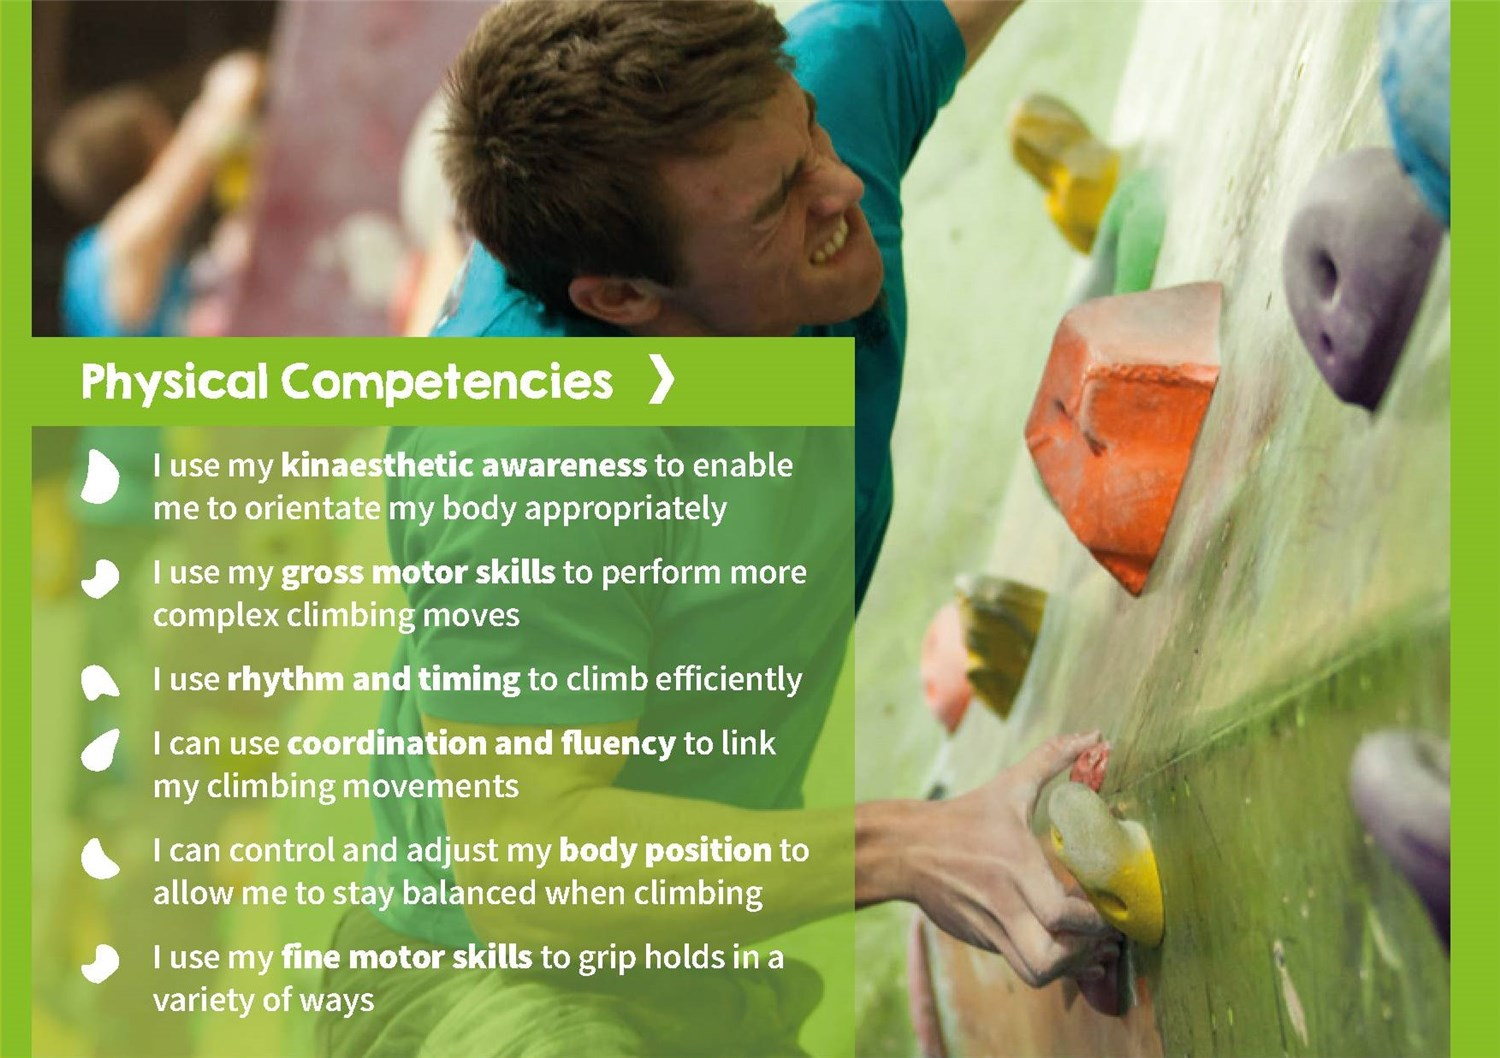 Physical Competences v1